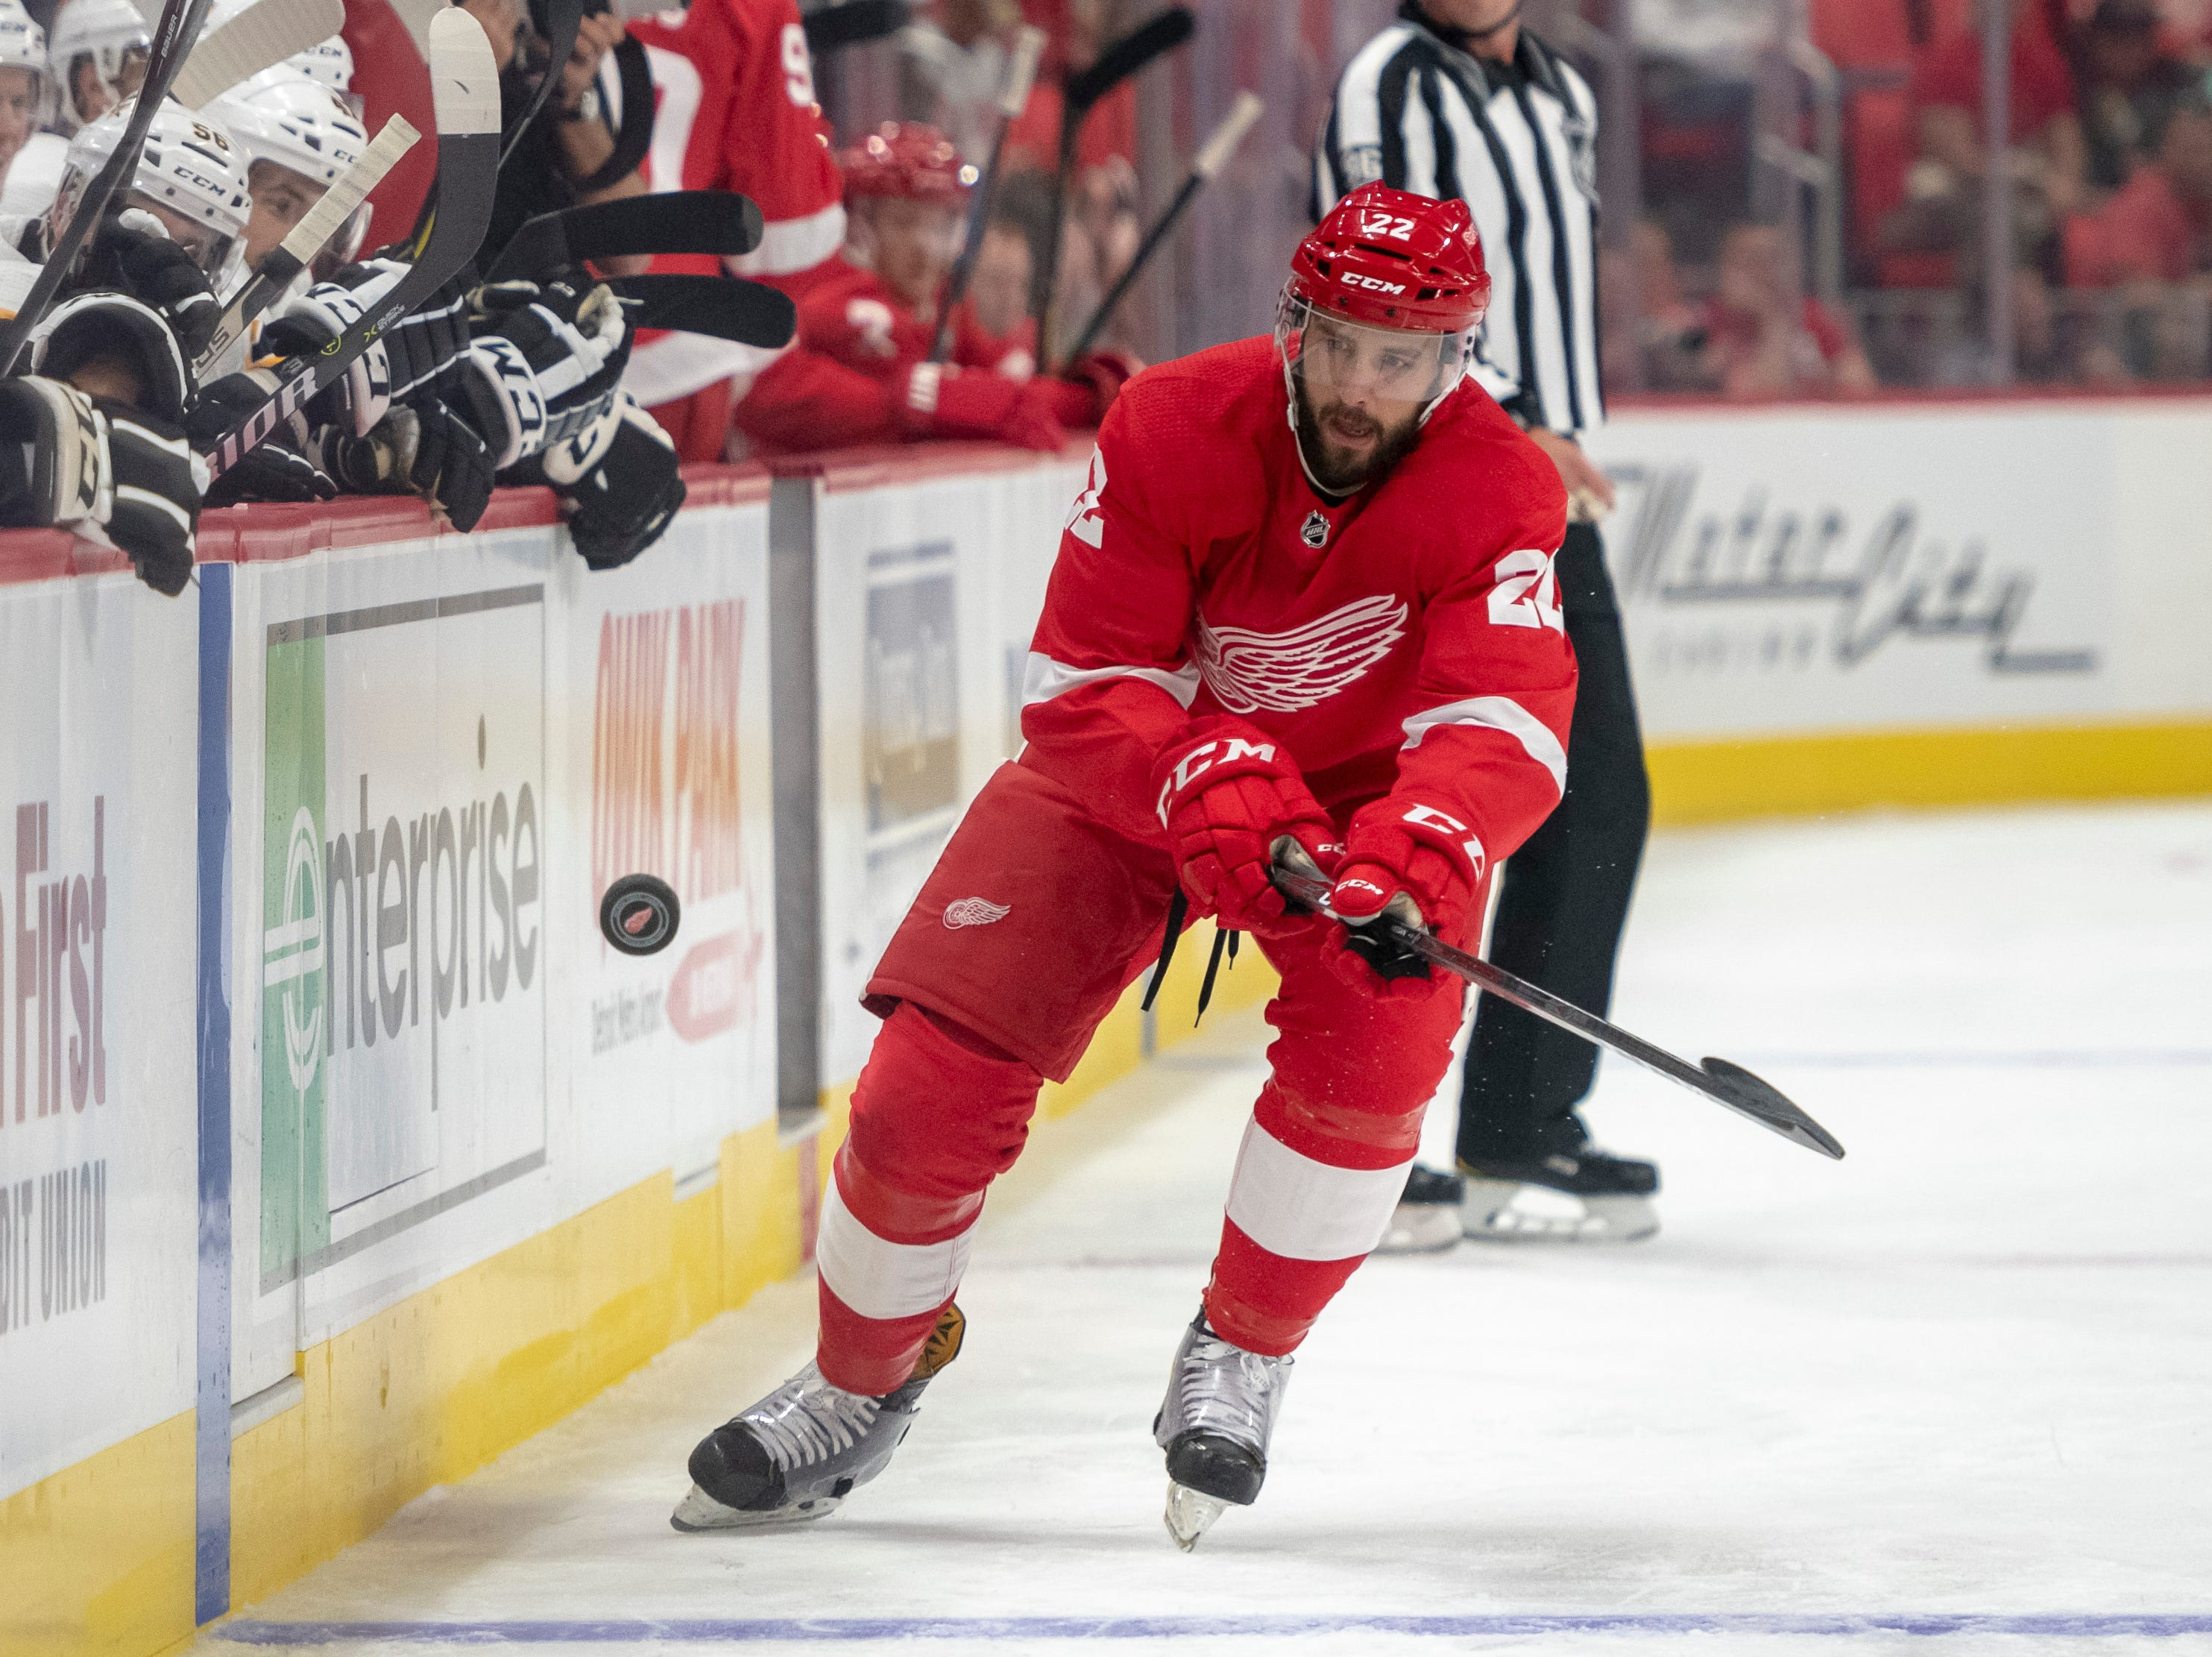 Detroit defenseman Wade Megan tries to stop a bouncing puck during the first period.            Photos are of the Detroit Red Wings vs. the Pittsburgh Penguins during a preseason game at Little Caesars Arena, in Detroit, September 19, 2018.  (David Guralnick / The Detroit News)